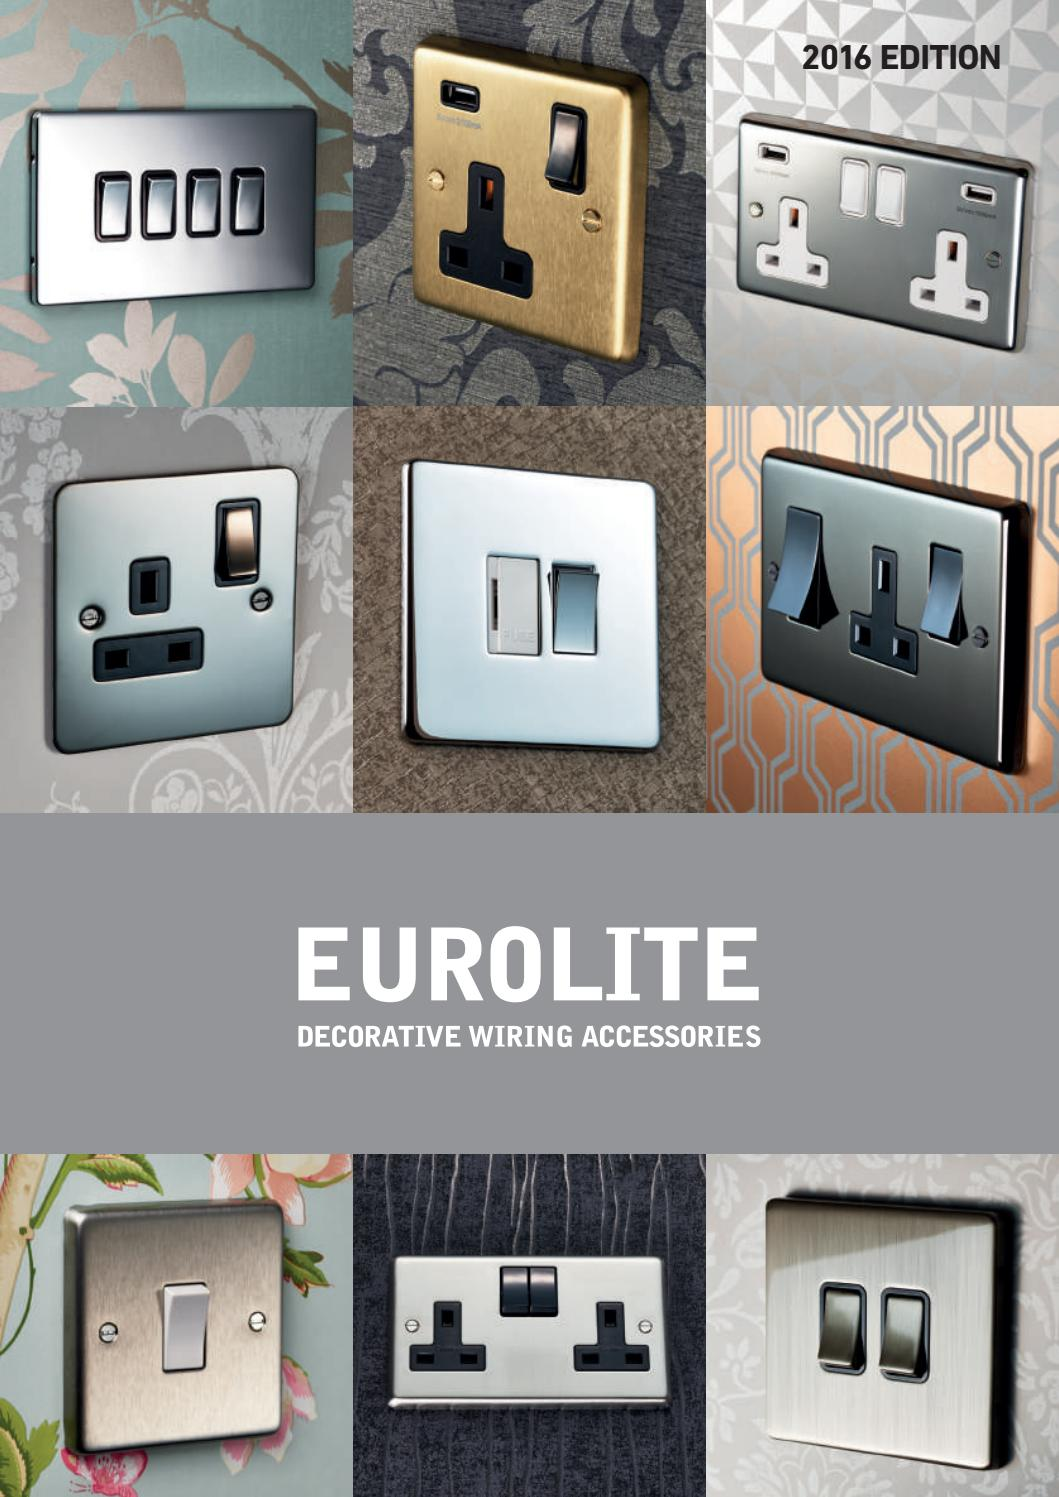 Eurolite Catalogue 2016 By Yuvilite Issuu Crabtree Wiring Accessories